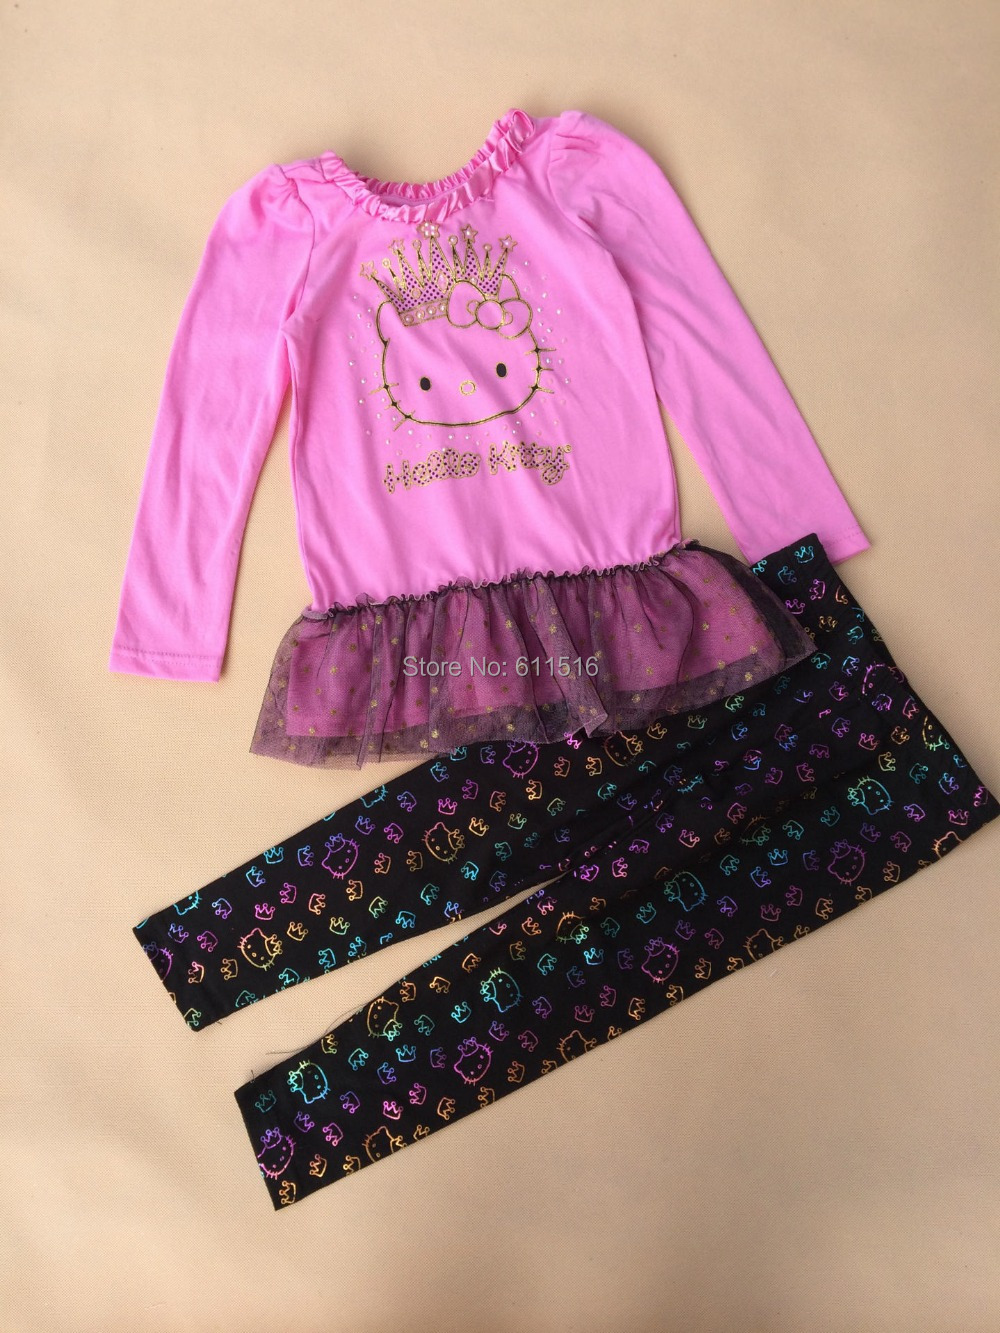 6 sets/lot 2-7 year girl helli kitty brand skirt suit dress cat leggings 2 pieces autumn outfit